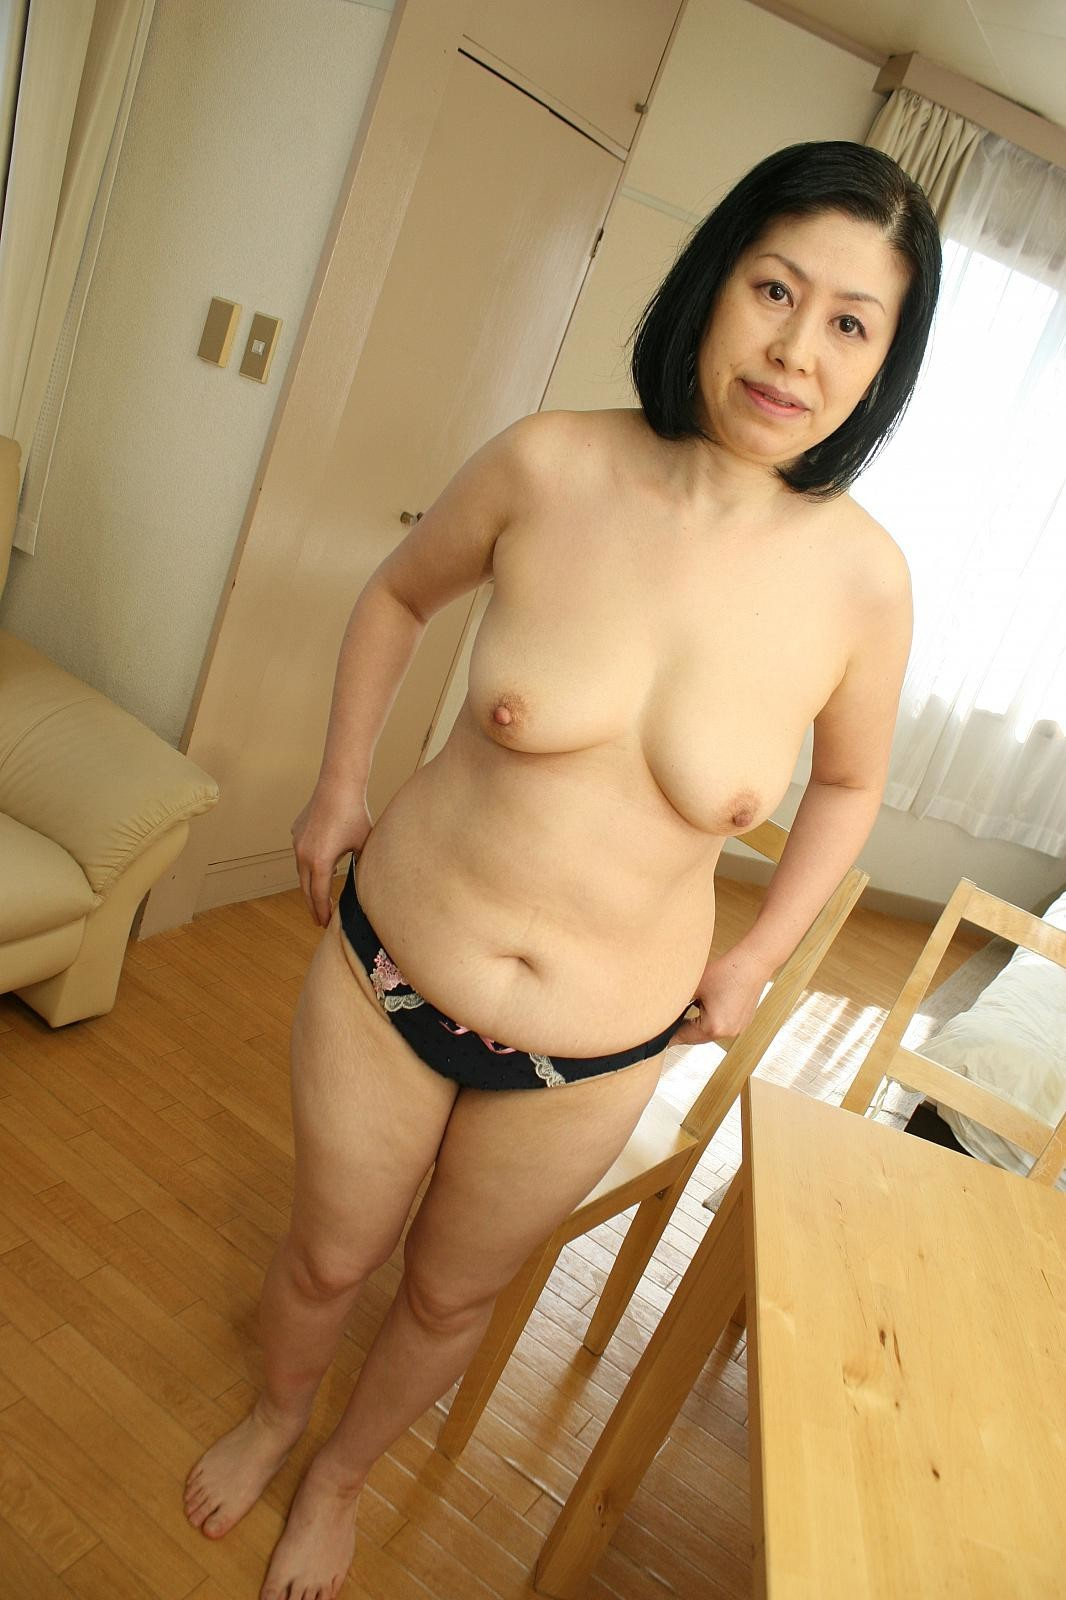 aunti nude for young boy